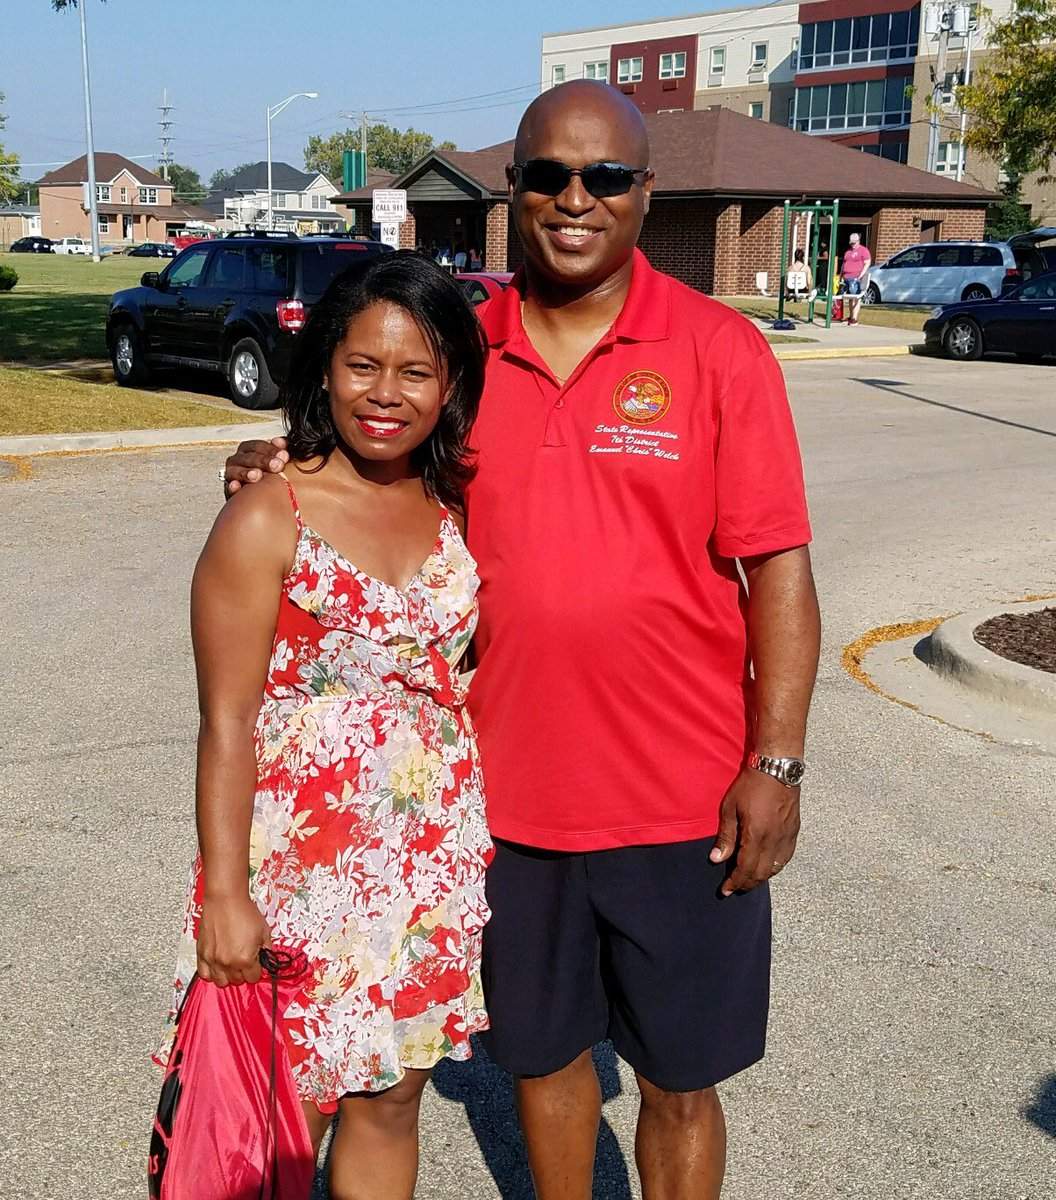 test Twitter Media - Enjoyed participating in the Proviso West HS Homecoming Parade and seeing the dynamic new principal, the Mayor of Bellwood and friends. https://t.co/Nto8Eozet4